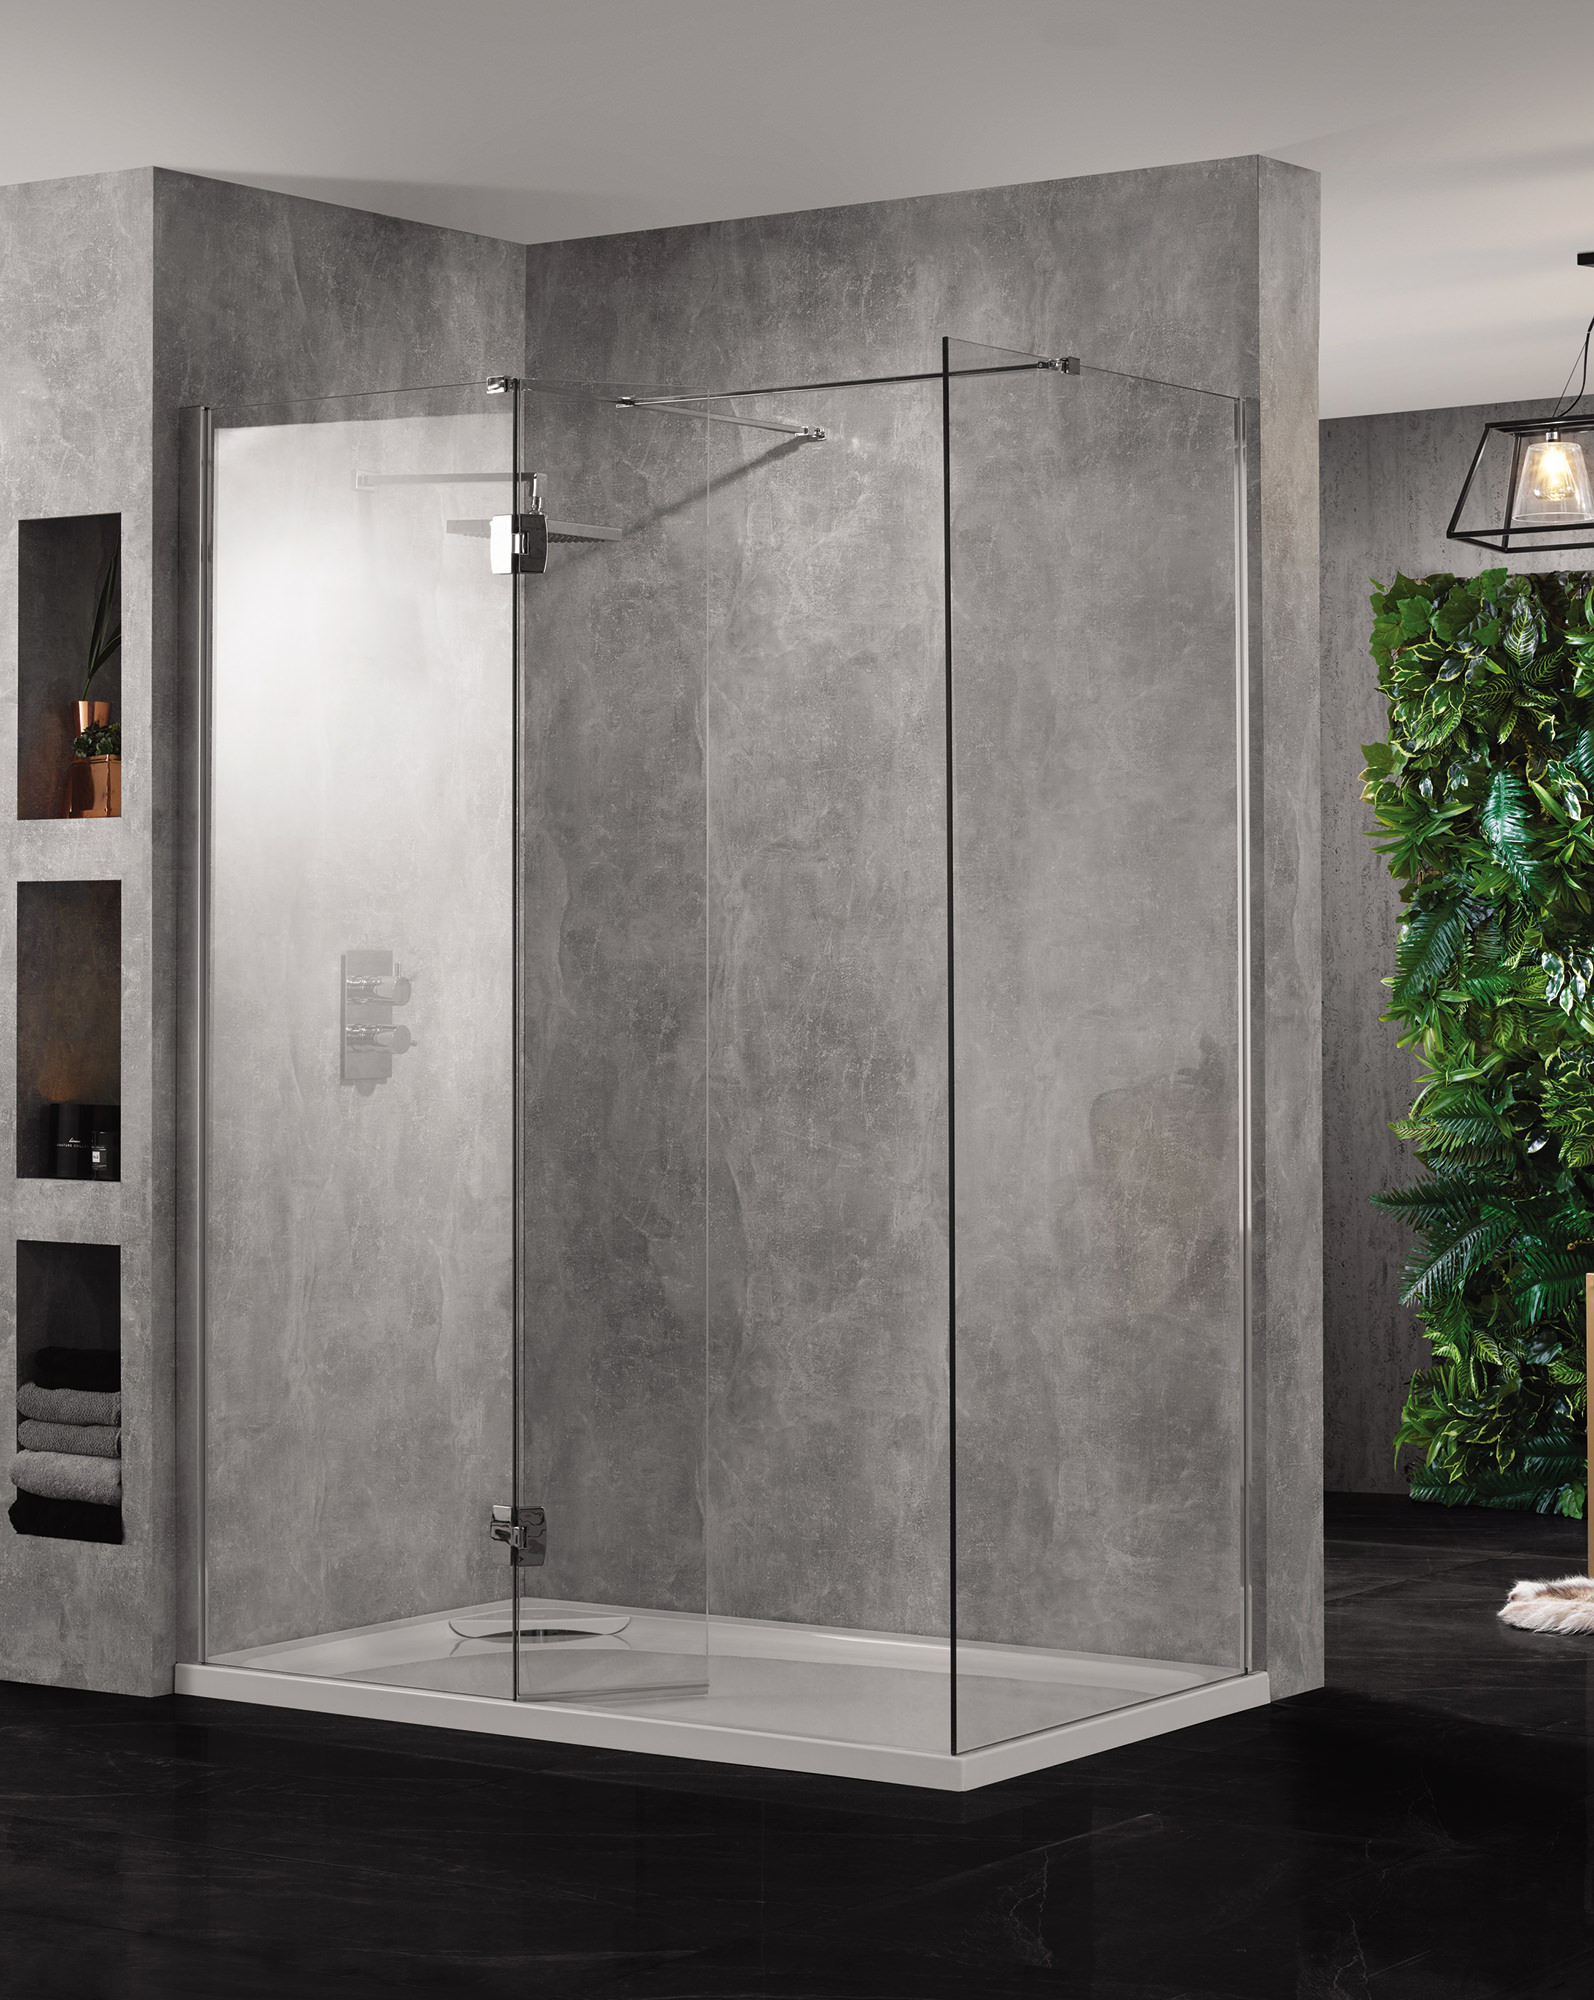 Aquadart wetroom 10 walk in 900mm clear glass shower panel Shower glass panel